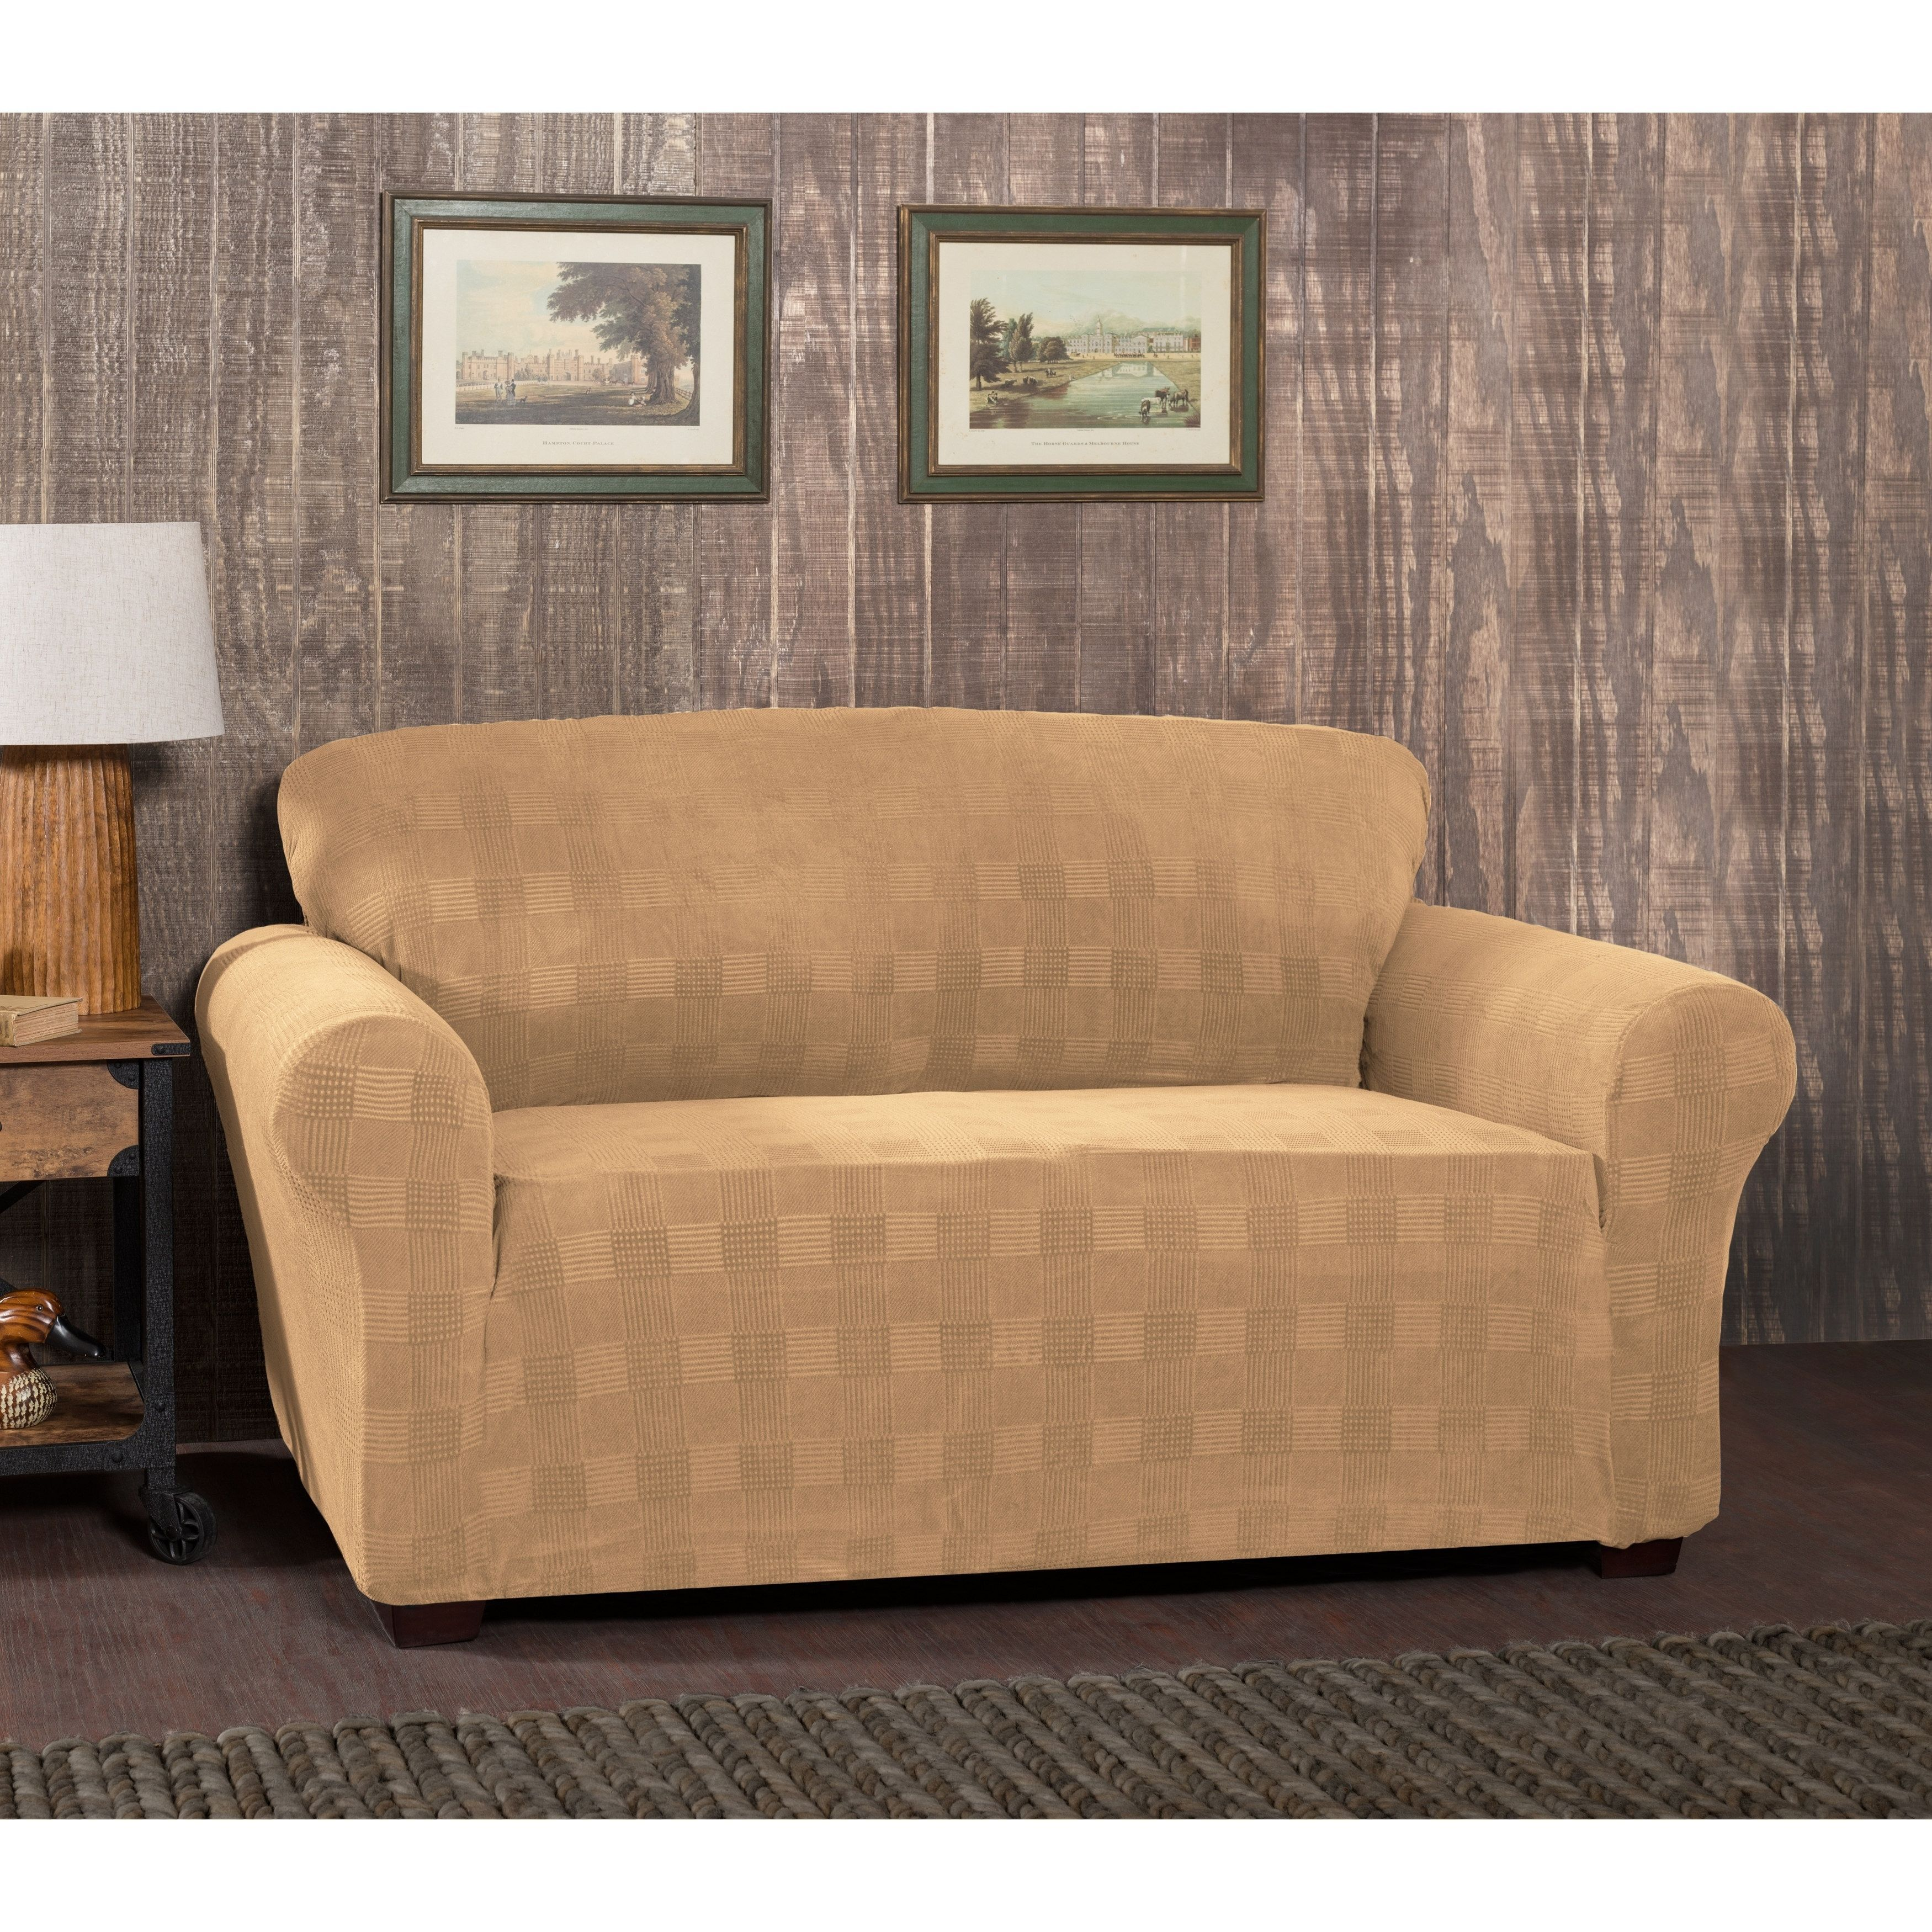 and loveseat crop surefit beyond for covers recline recliner stretch fit kohls slipcovers h furniture sure cover engaging sofa armchair w slipcover couch bed impressive bath